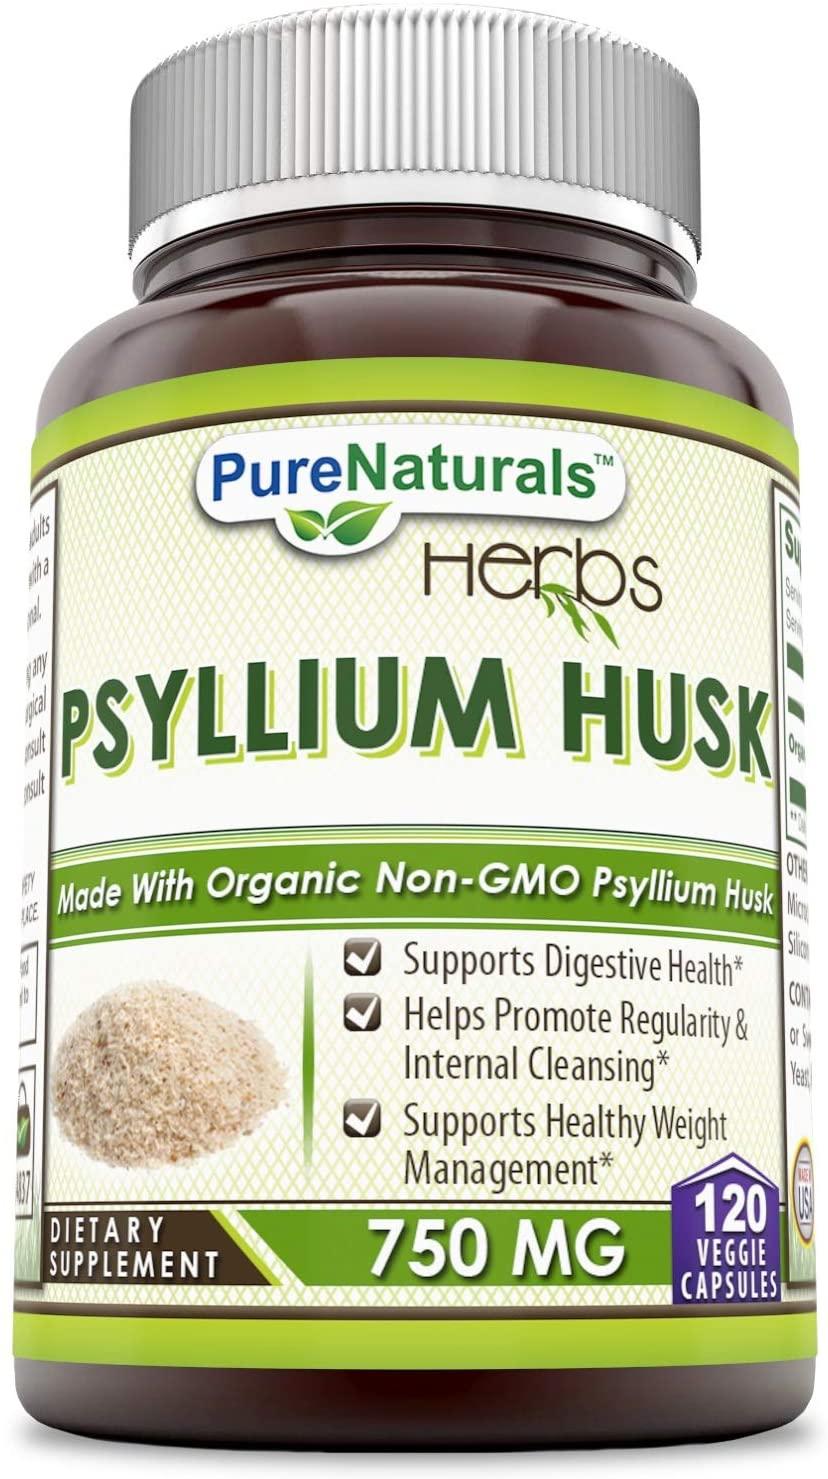 Pure Naturals Psyllium Husk 750 Mg 120 Veggie Capsules,SupportsDigestive Health, Helps Promote Regularity & Internal Cleansing, Supports Healthy Weight Management